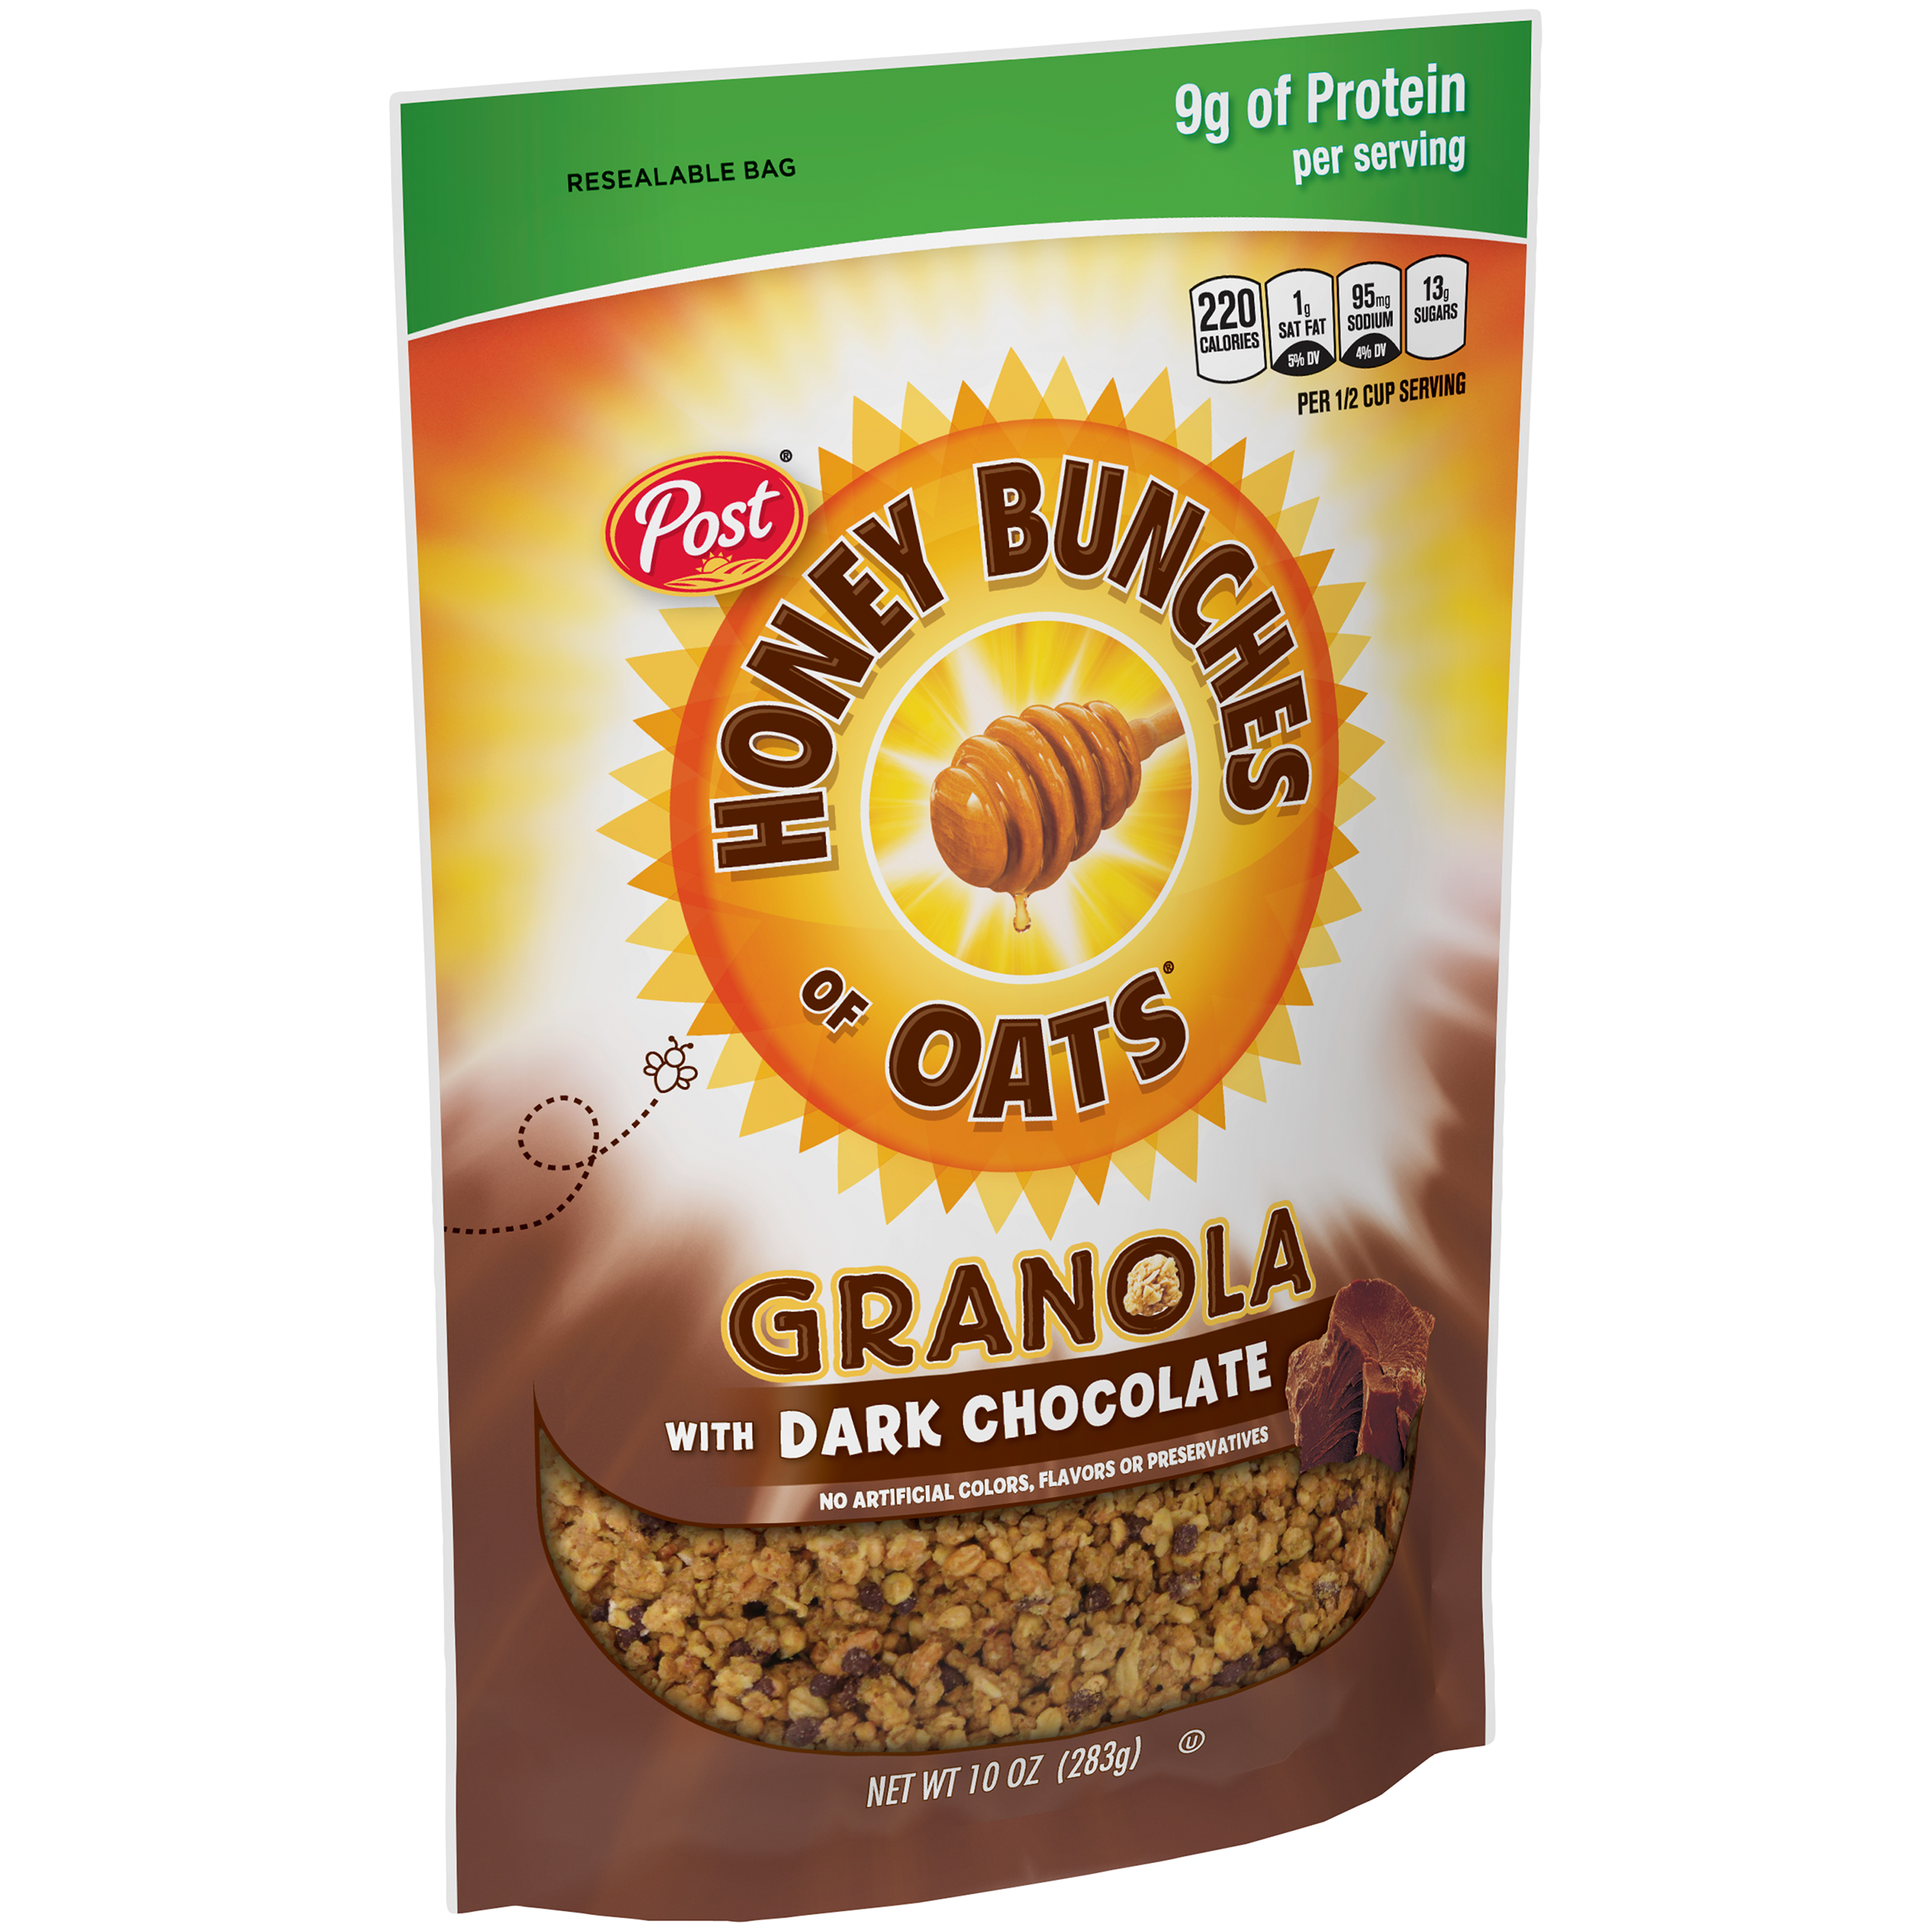 Post�� Honey Bunches of Oats�� Granola with Dark Chocolate 10 oz. Bag